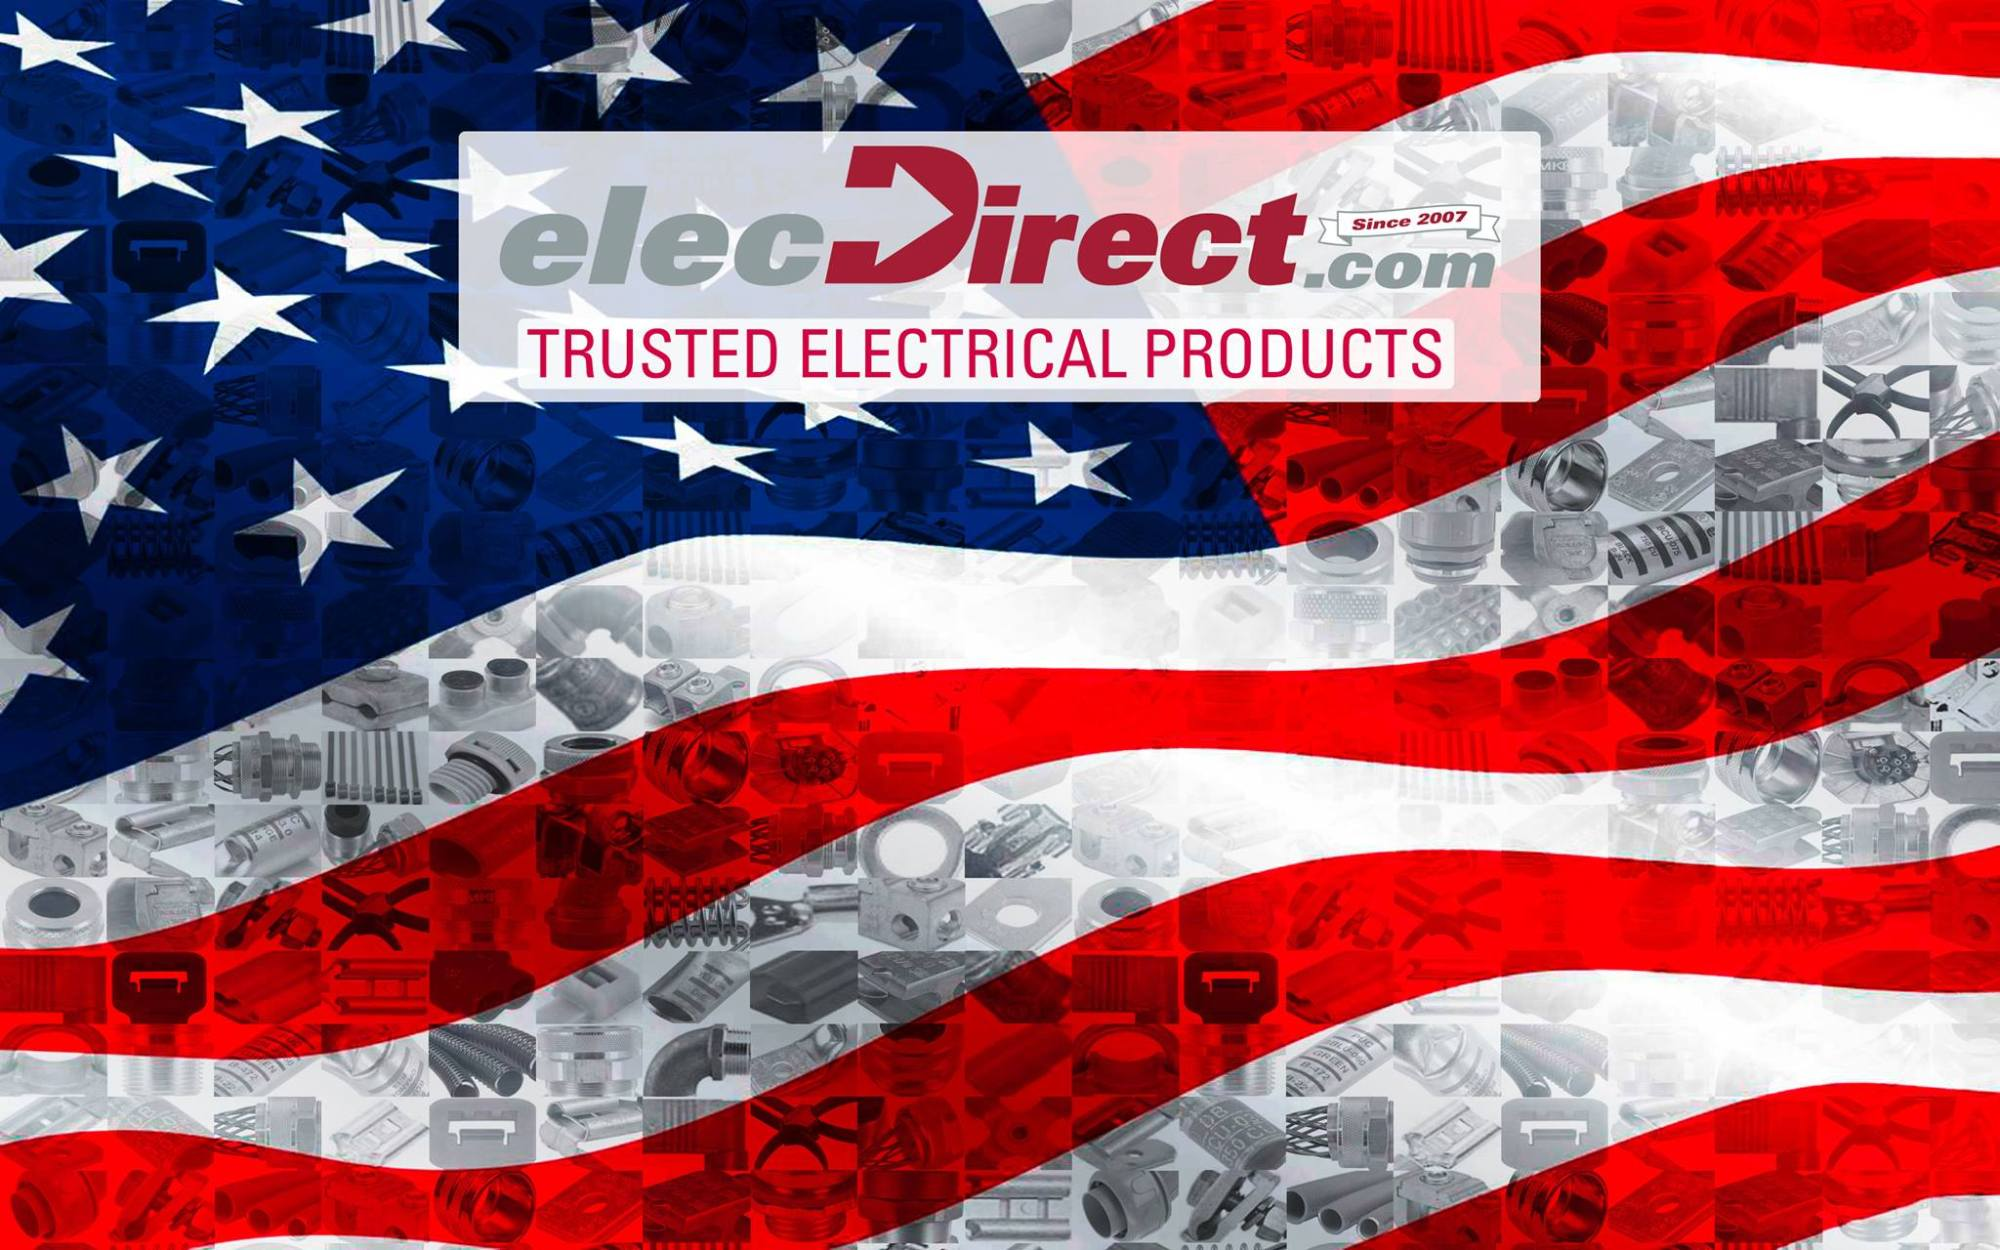 hight resolution of electdirect also serves as viable source for your wiring harness assembly parts and components electdirect offers professional grade electrical connector